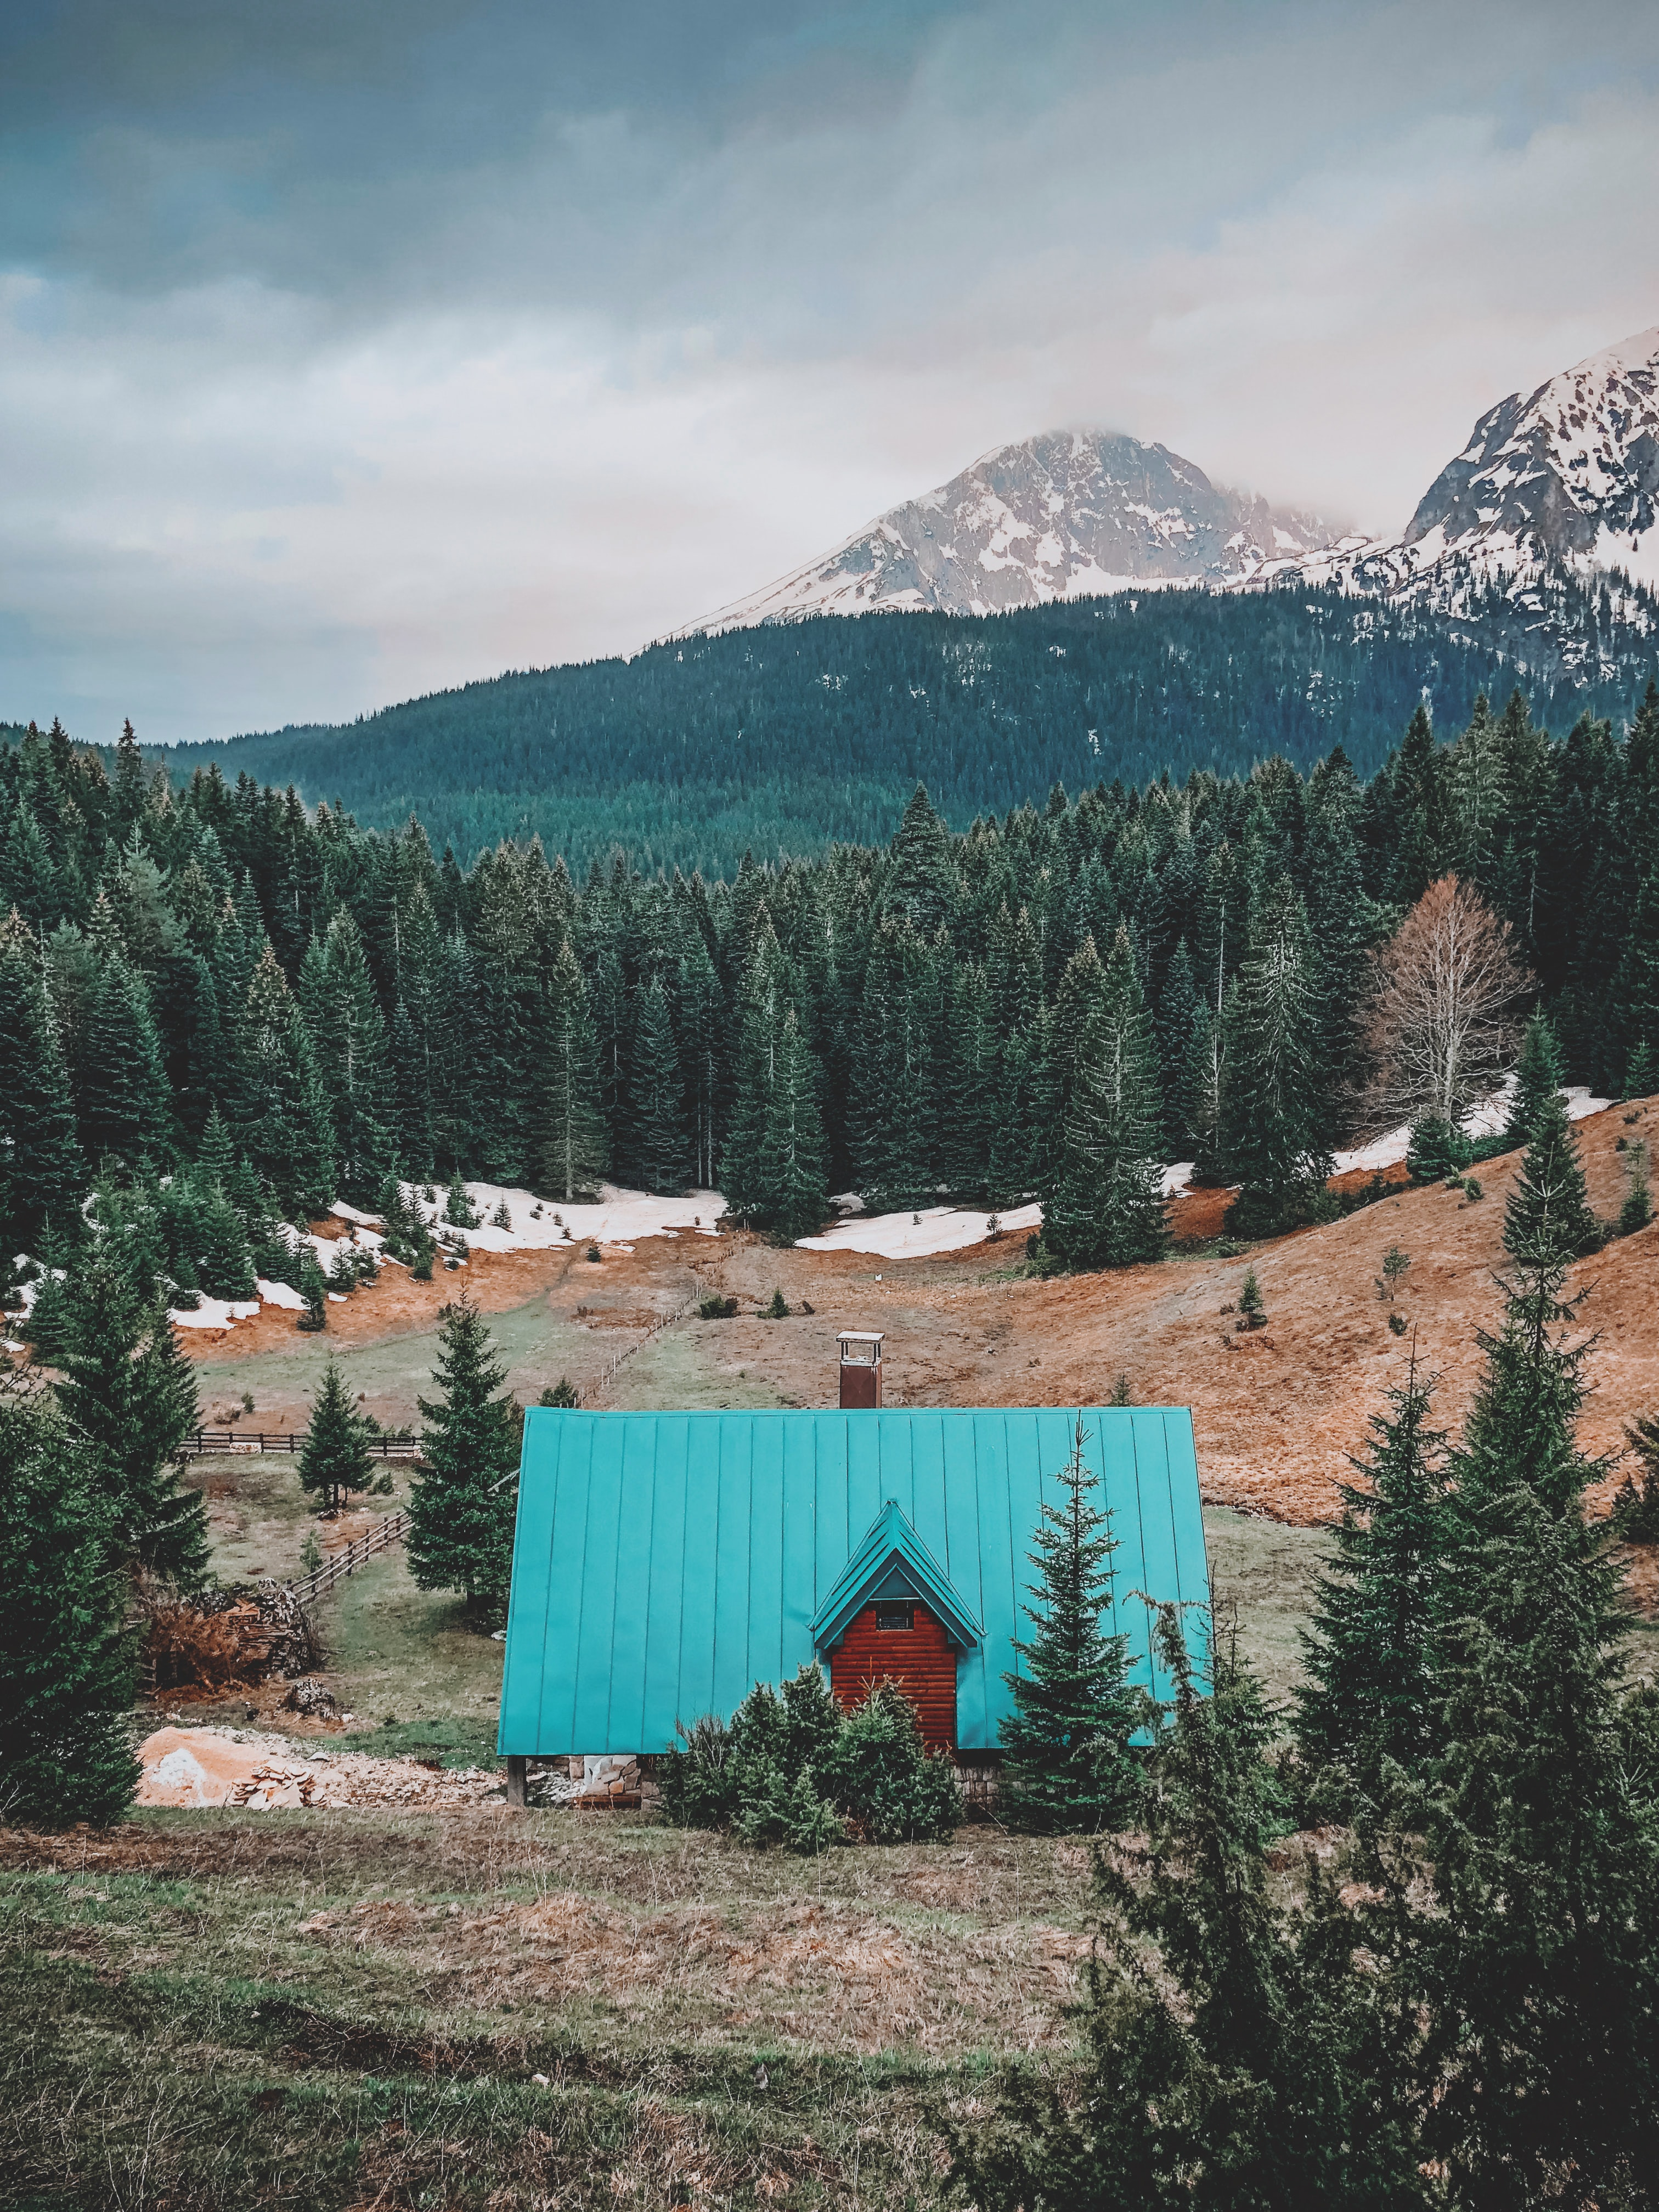 teal roof house surrounded by pine trees